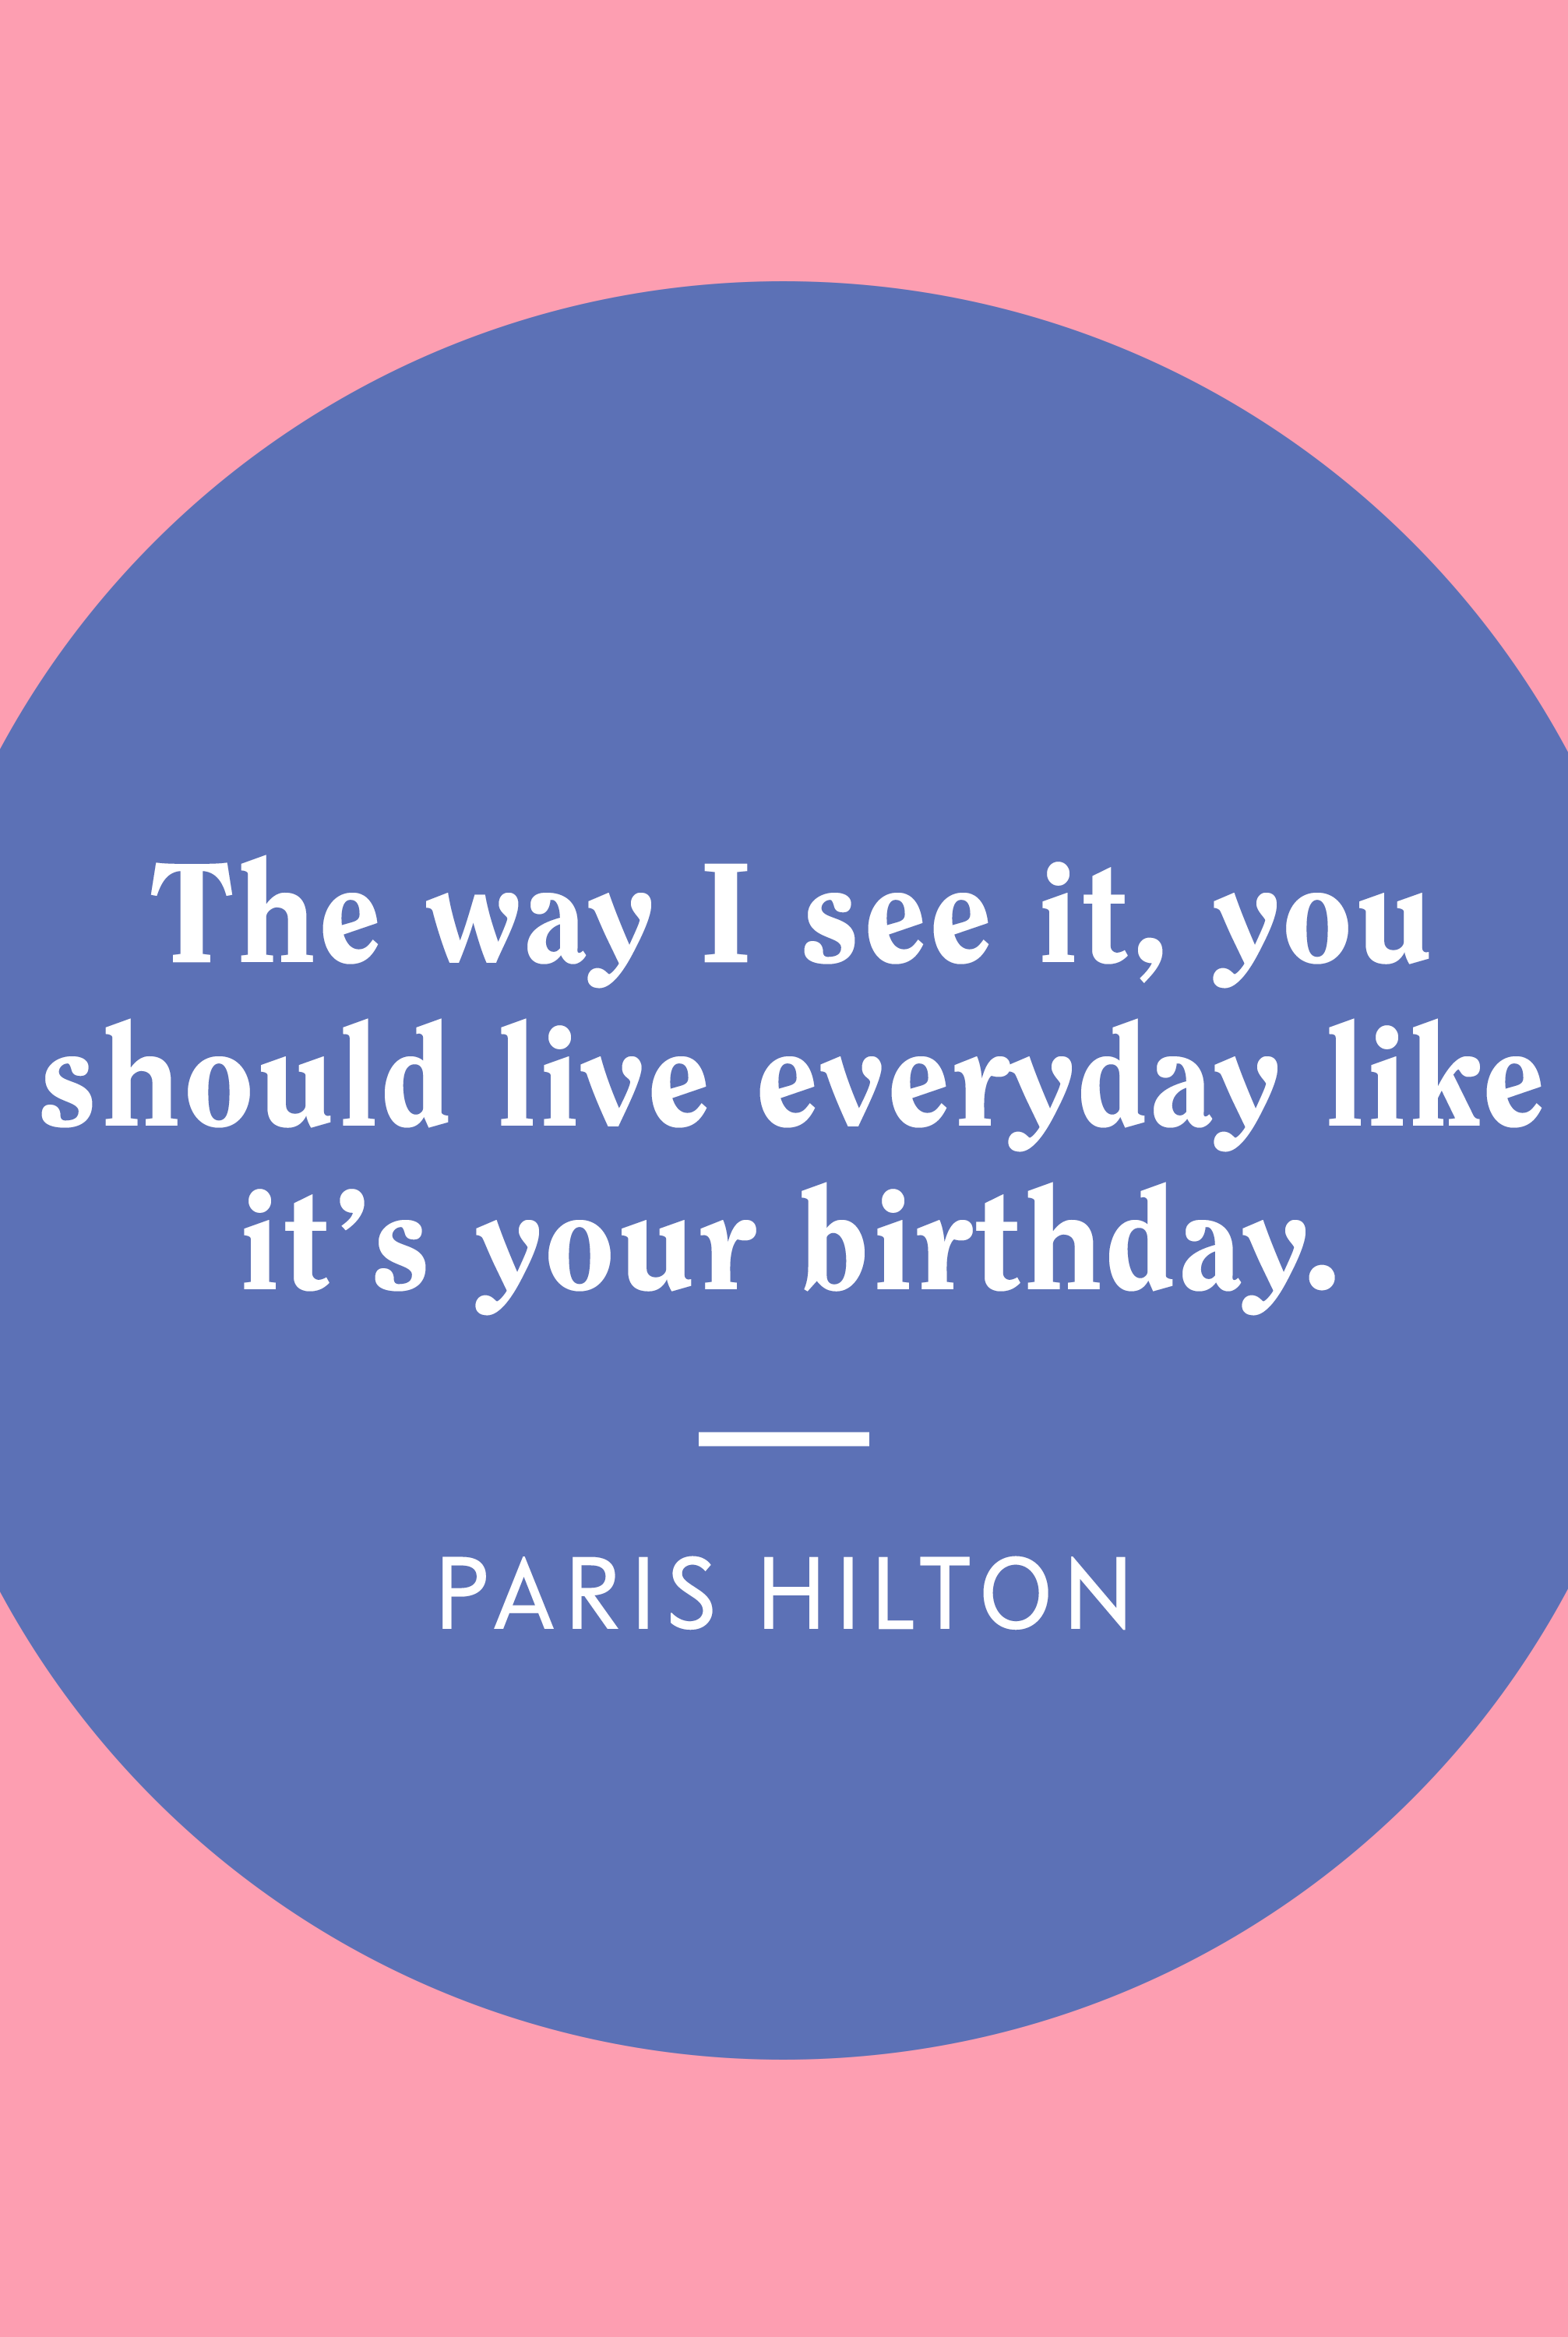 20 Birthday Quotes And Messages For Every Person In Your Life